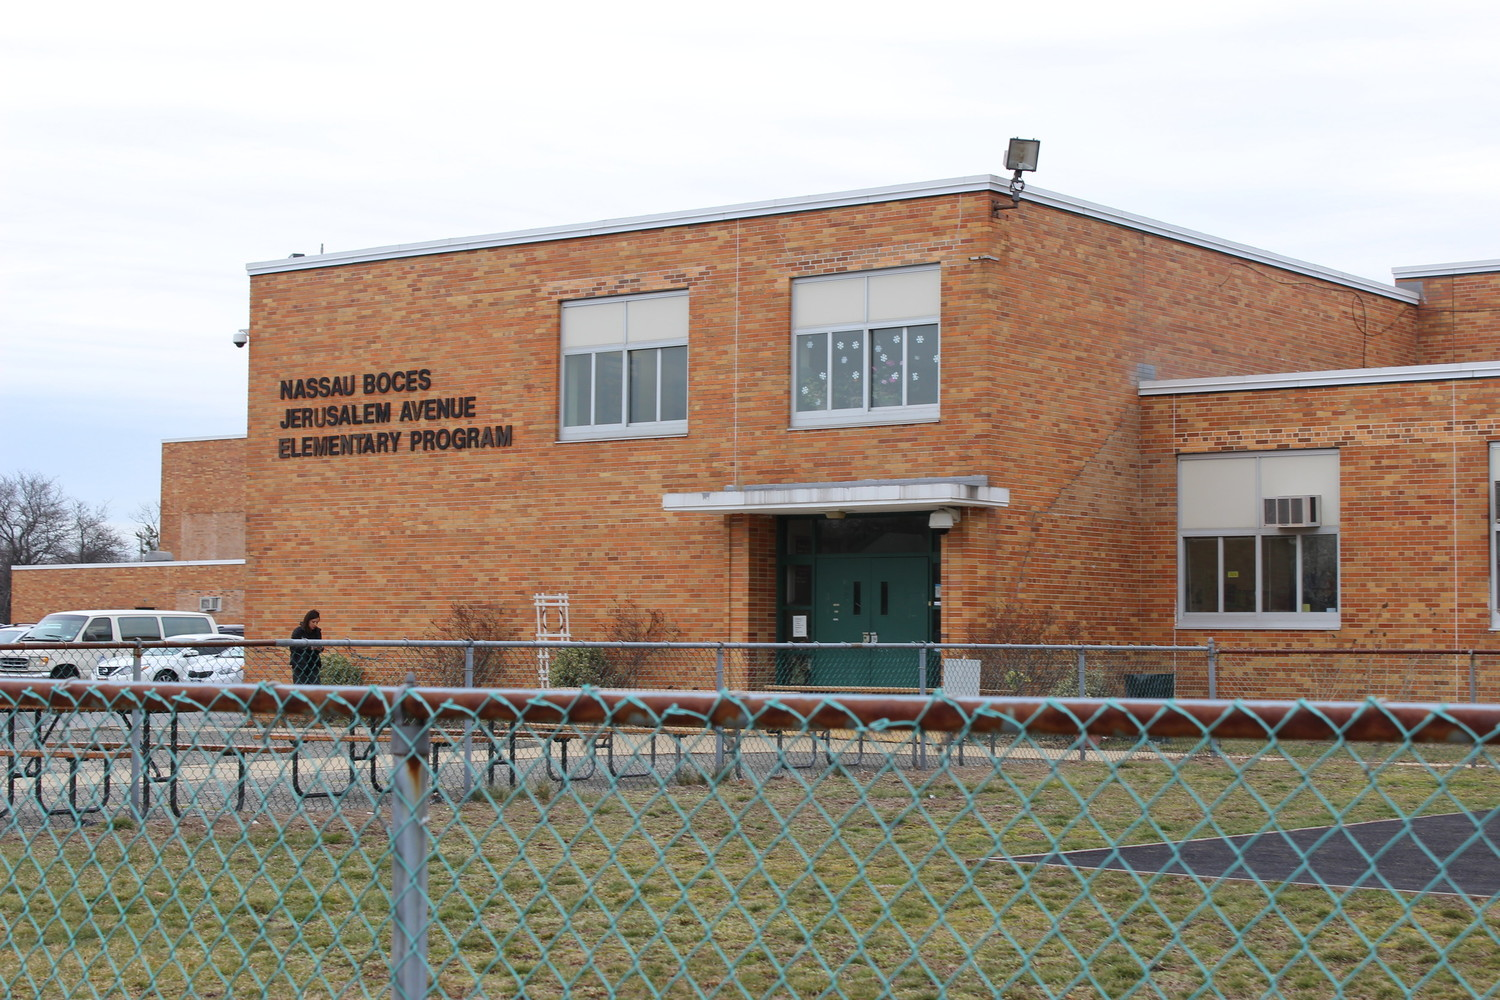 The Jerusalem Avenue school building in North Bellmore will be purchased by Nassau BOCES, after a Feb. 8 vote in all of the organization's districts overwhelmingly supported the move.